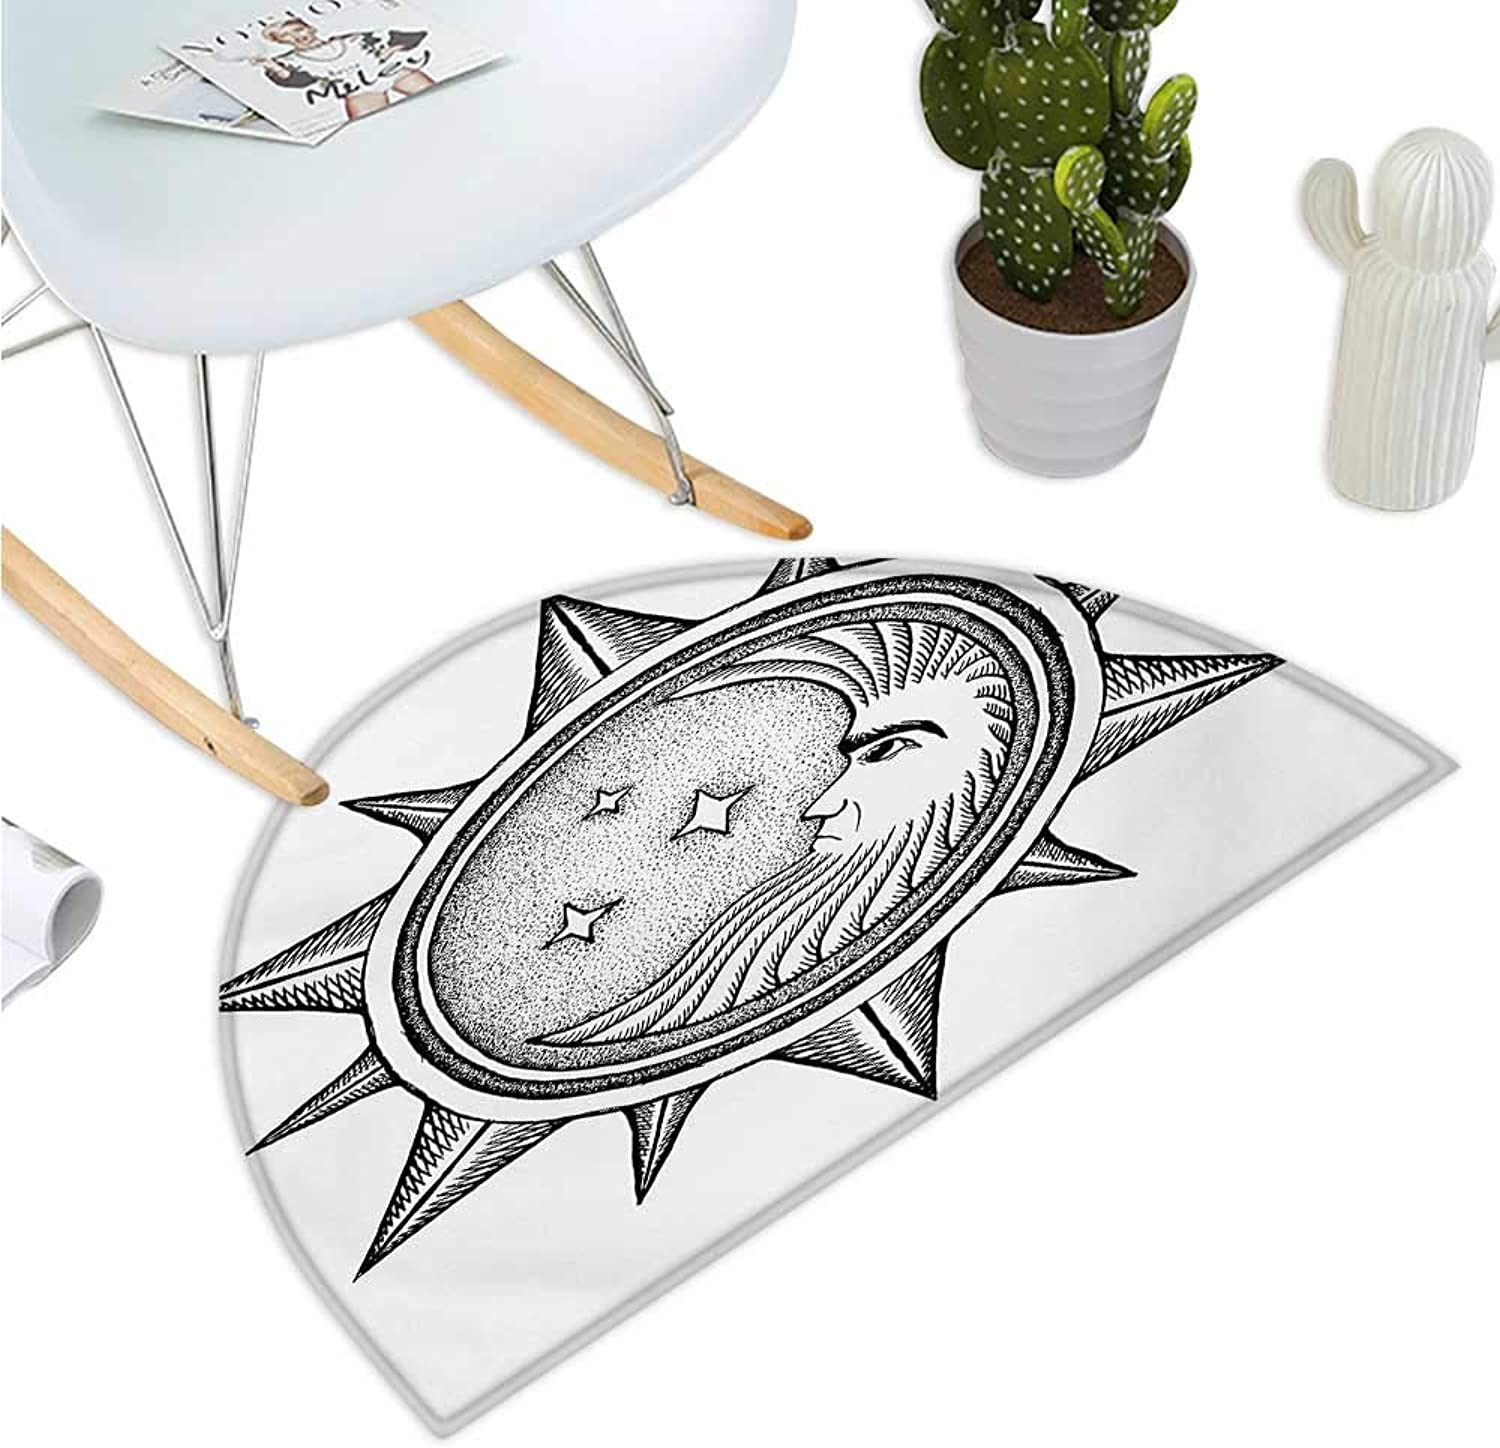 Occult Semicircle Doormat Moon Inside The Sun with Stars Alchemy Clandestine Esoteric Solar Crescent Artwork Entry Door Mat H 35.4  xD 53.1  Black Grey